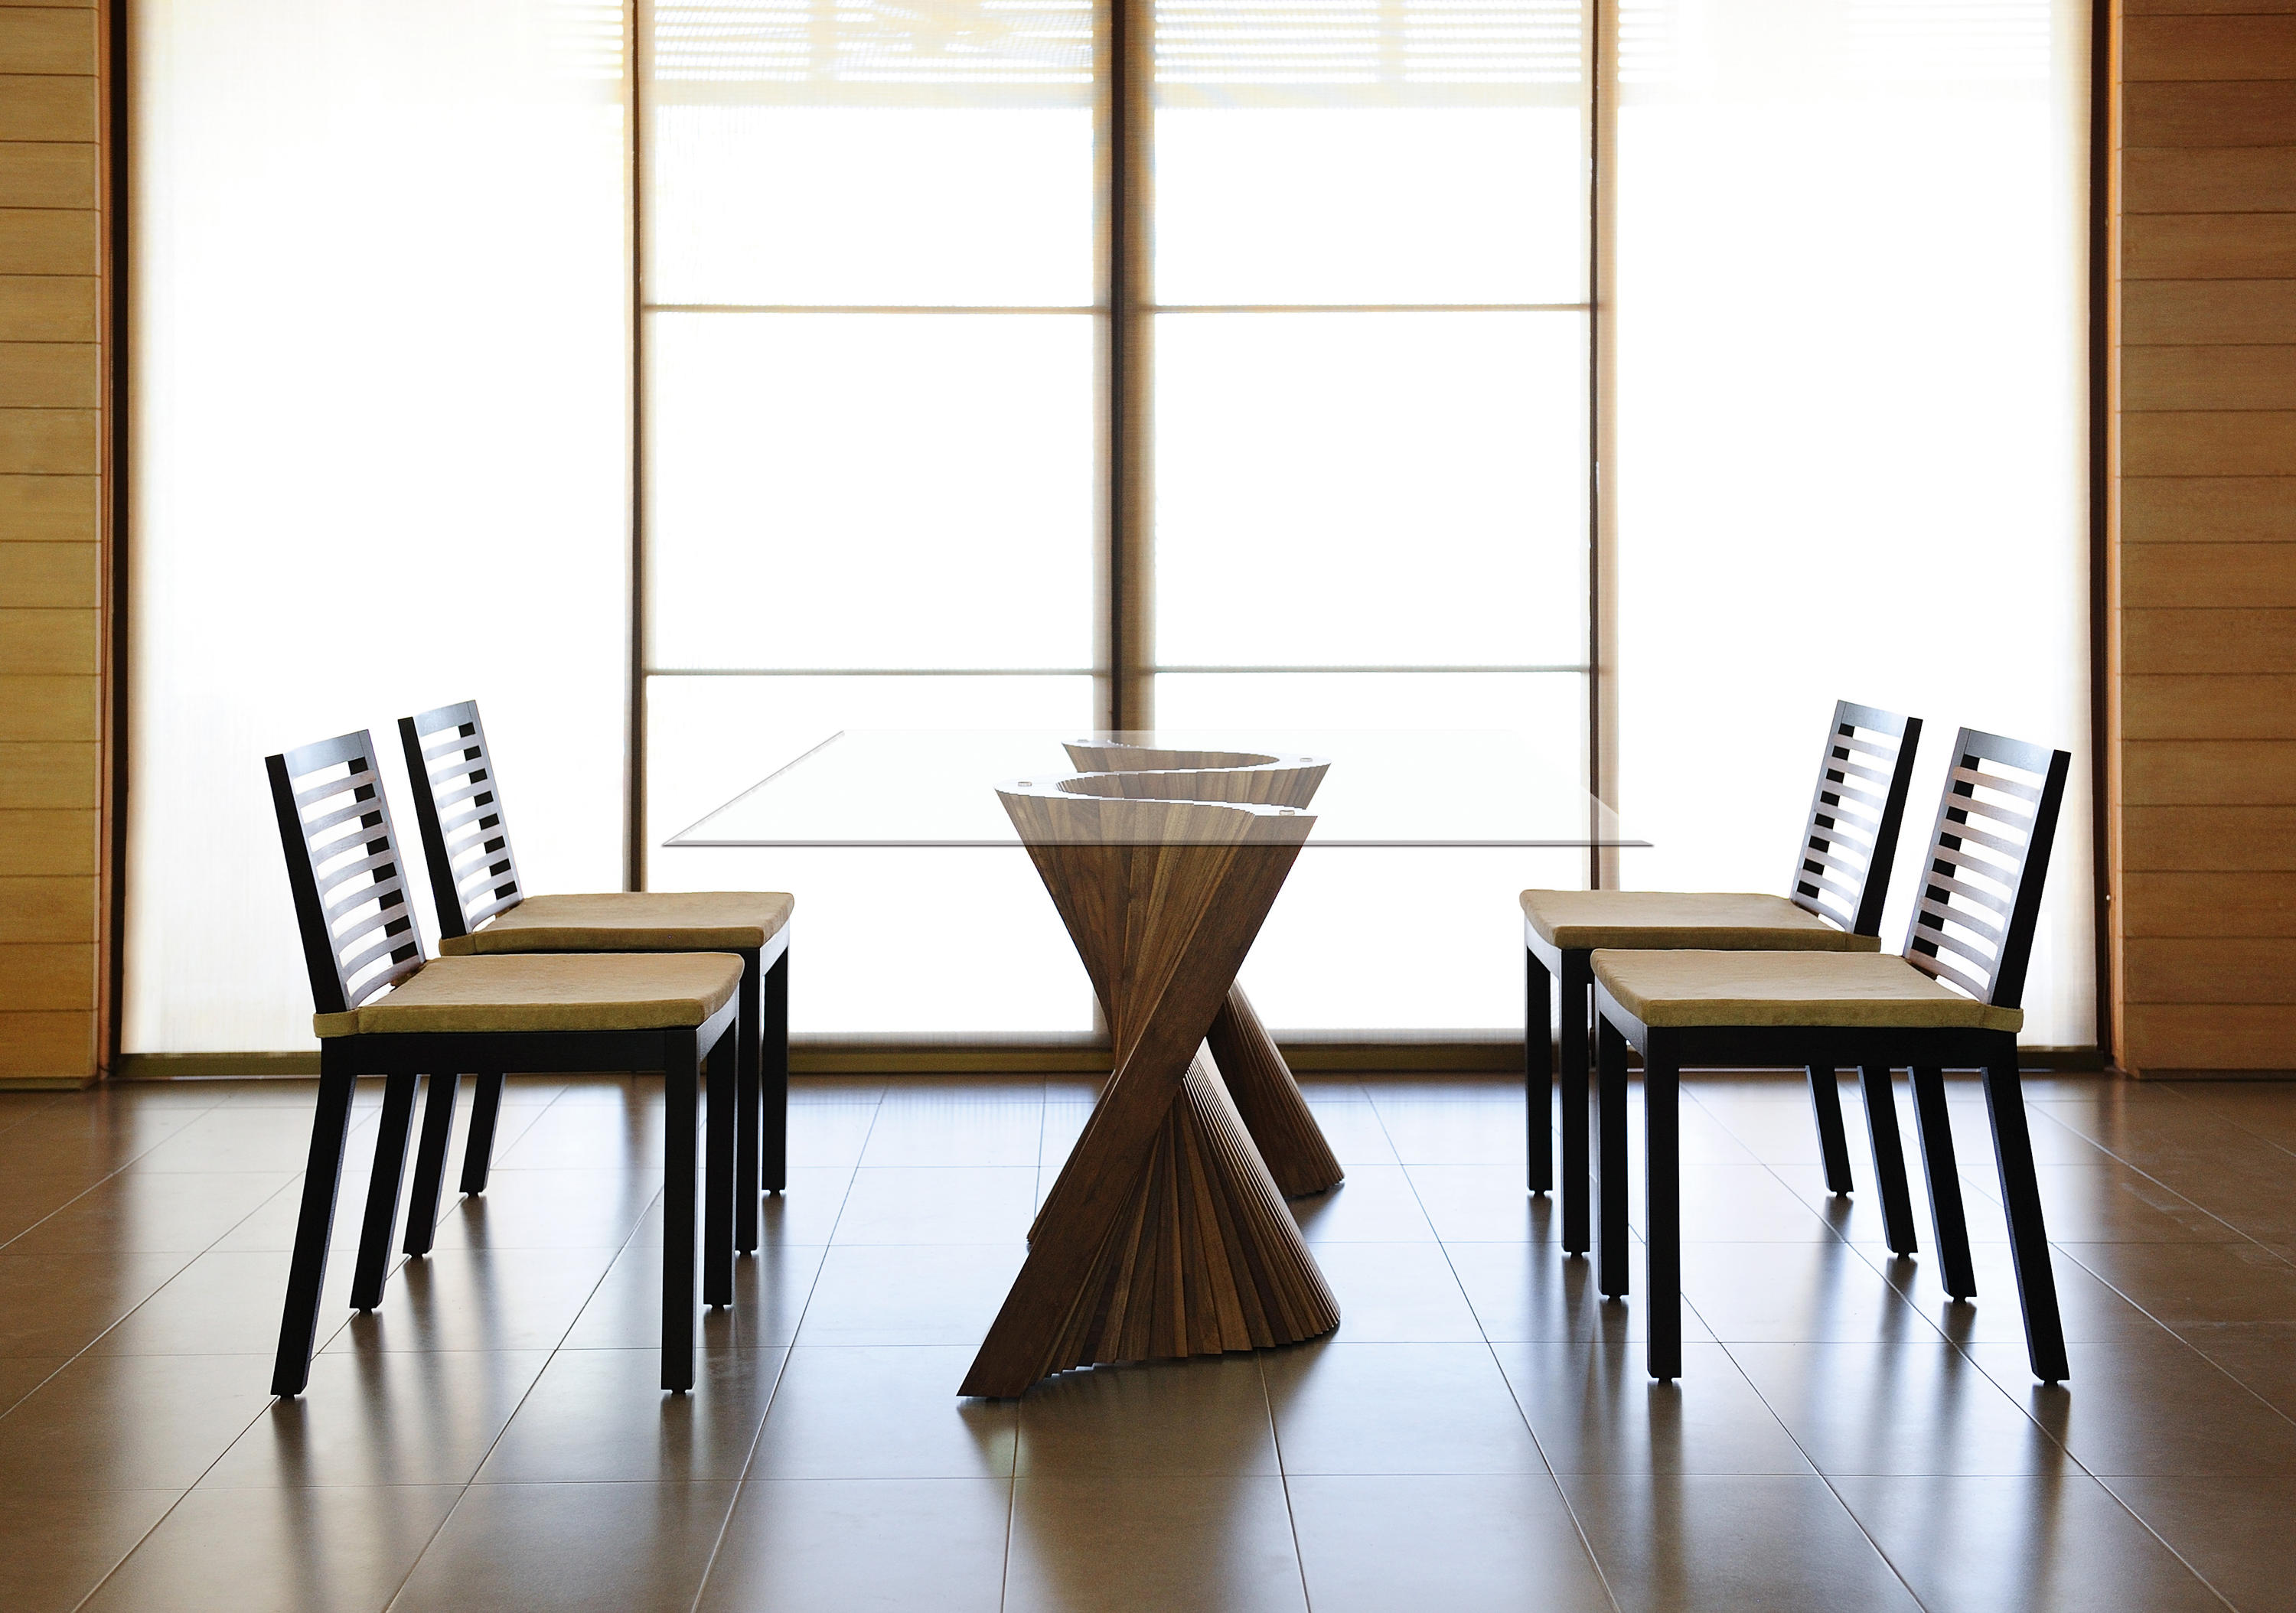 WAVE DINING TABLE Dining tables from Kenneth Cobonpue  : wave setting 02 b from www.architonic.com size 3000 x 2108 jpeg 567kB